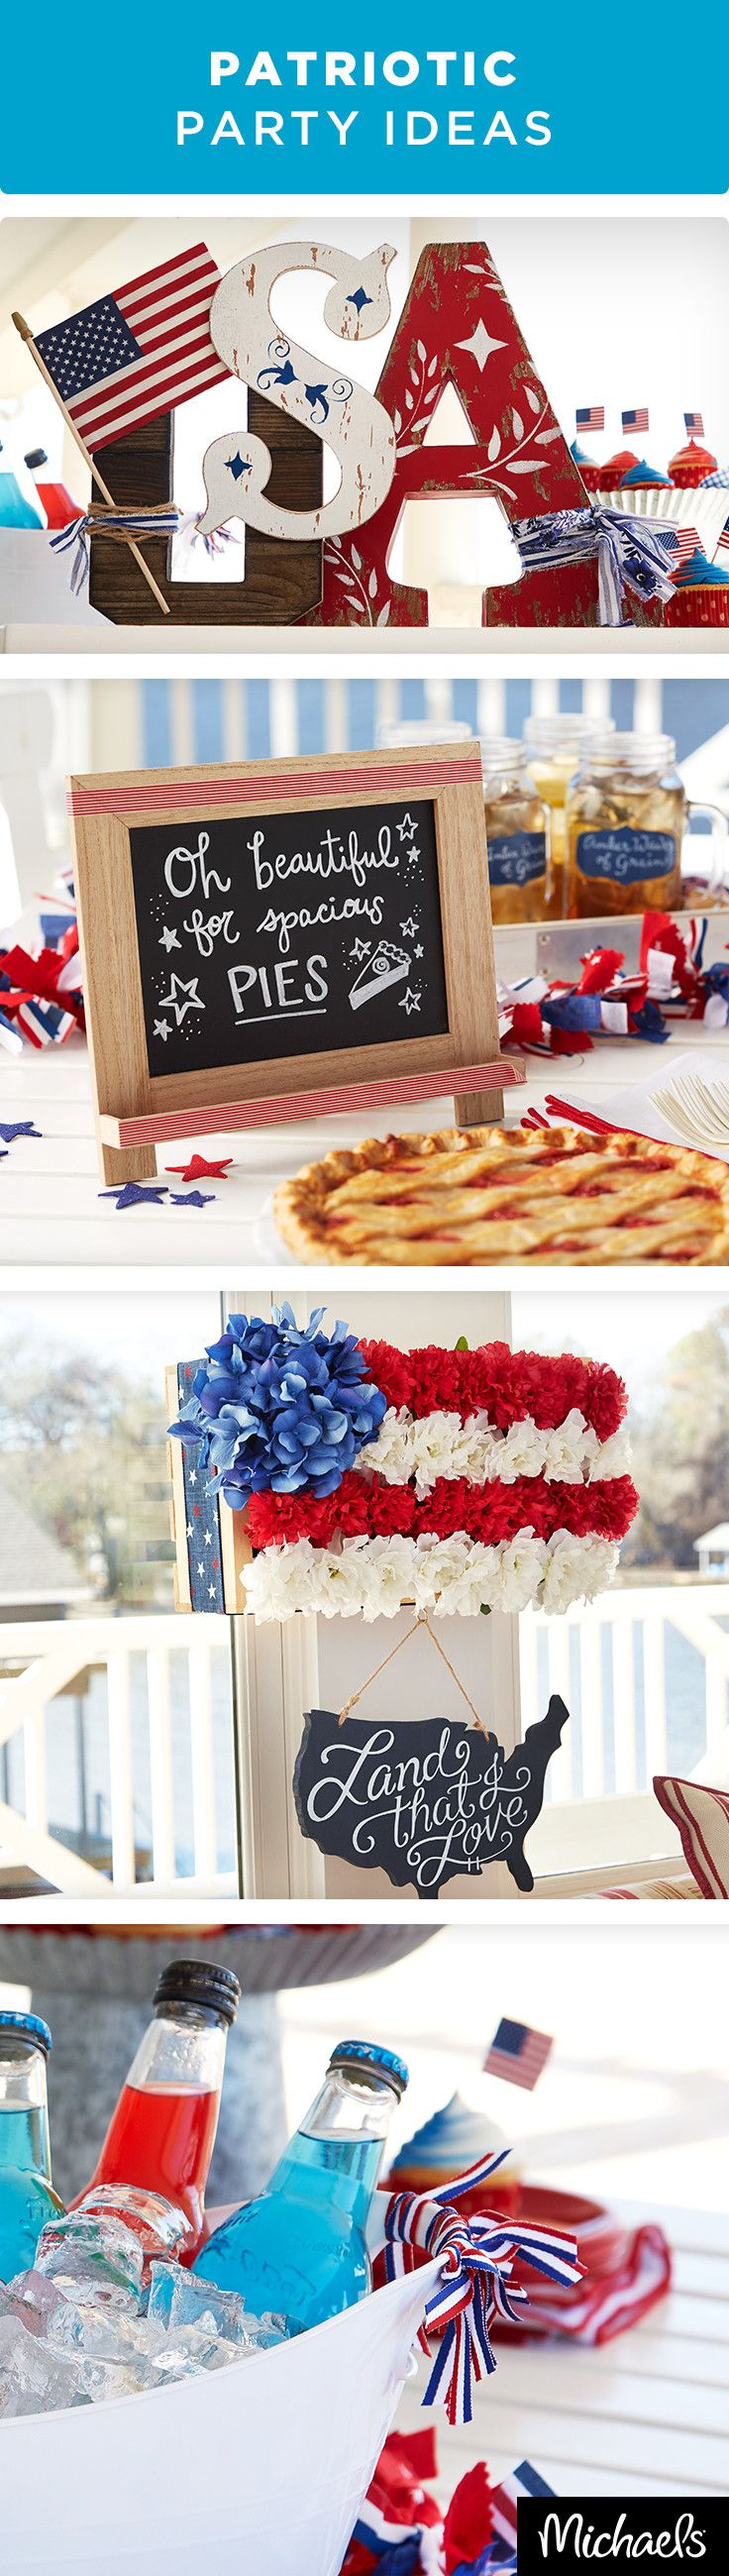 These DIY party ideas will liven up your Patriotic celebrations! From Star-Spangled banners to red, white & blue drinks and desserts, these ideas are sure to make any party pop. Find everything you need at your local Michaels and make your Independence Day celebration fun & festive!